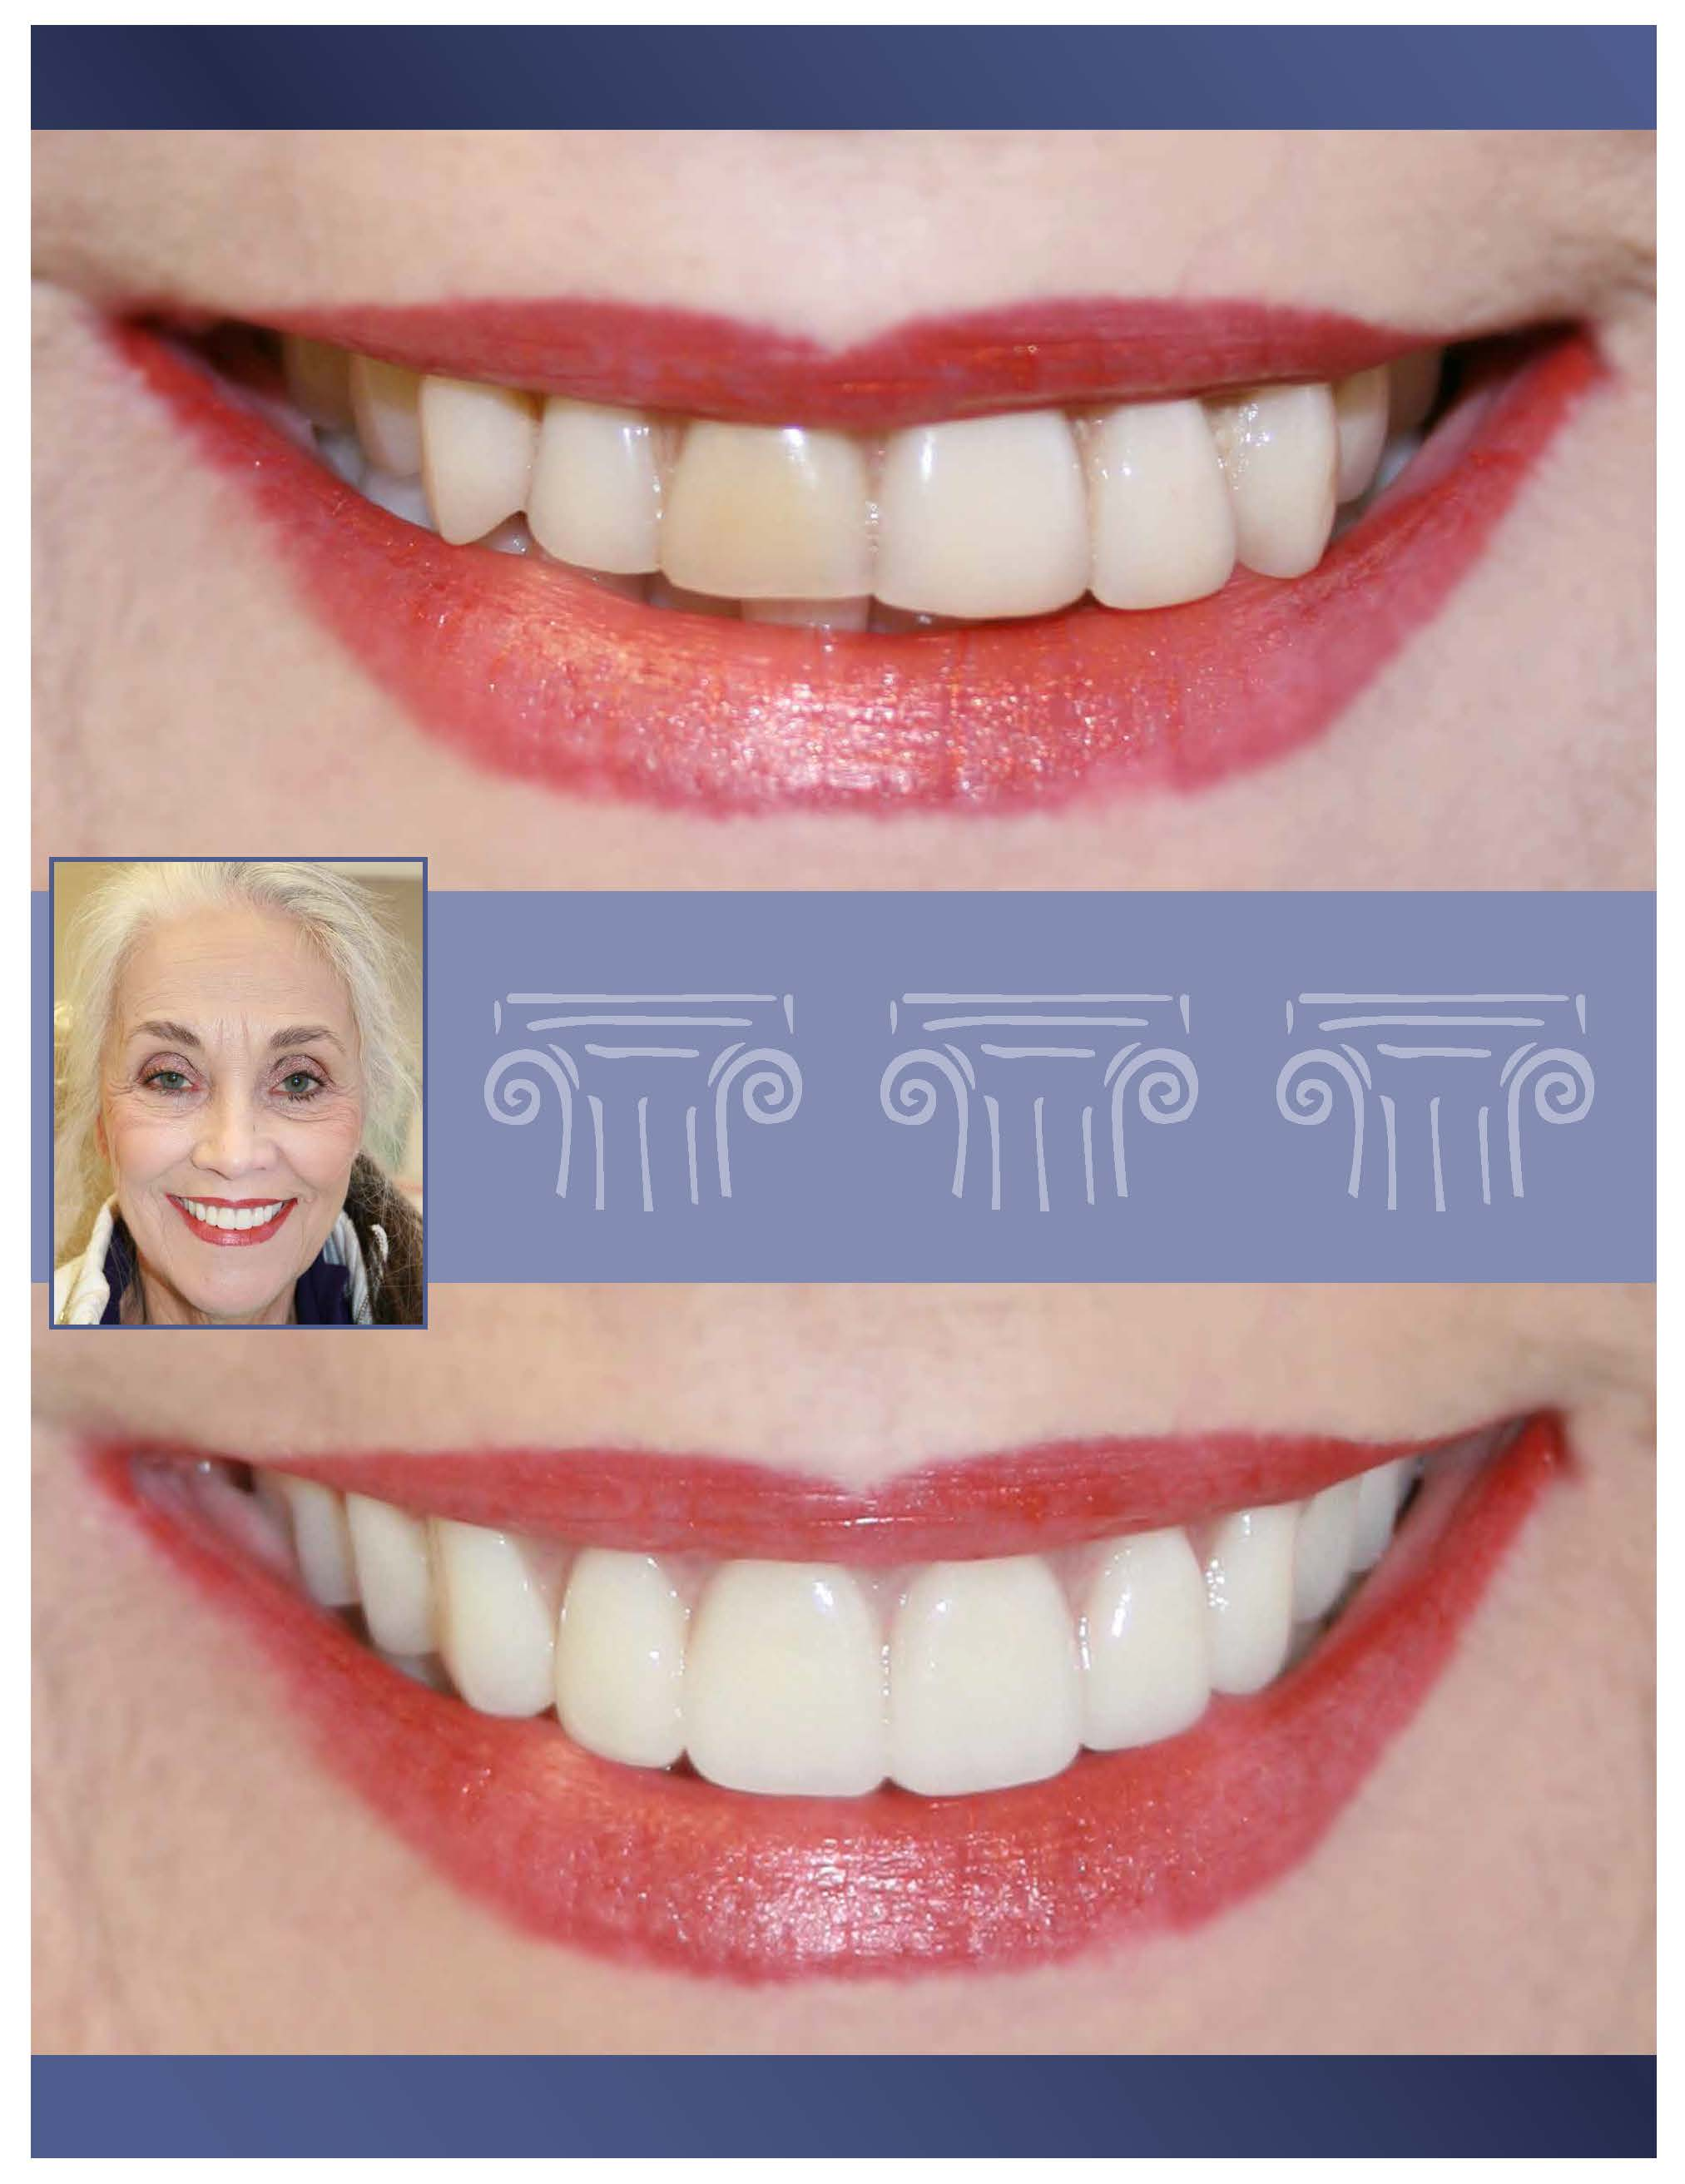 Cosmetic dentistry by a Prosthodontist